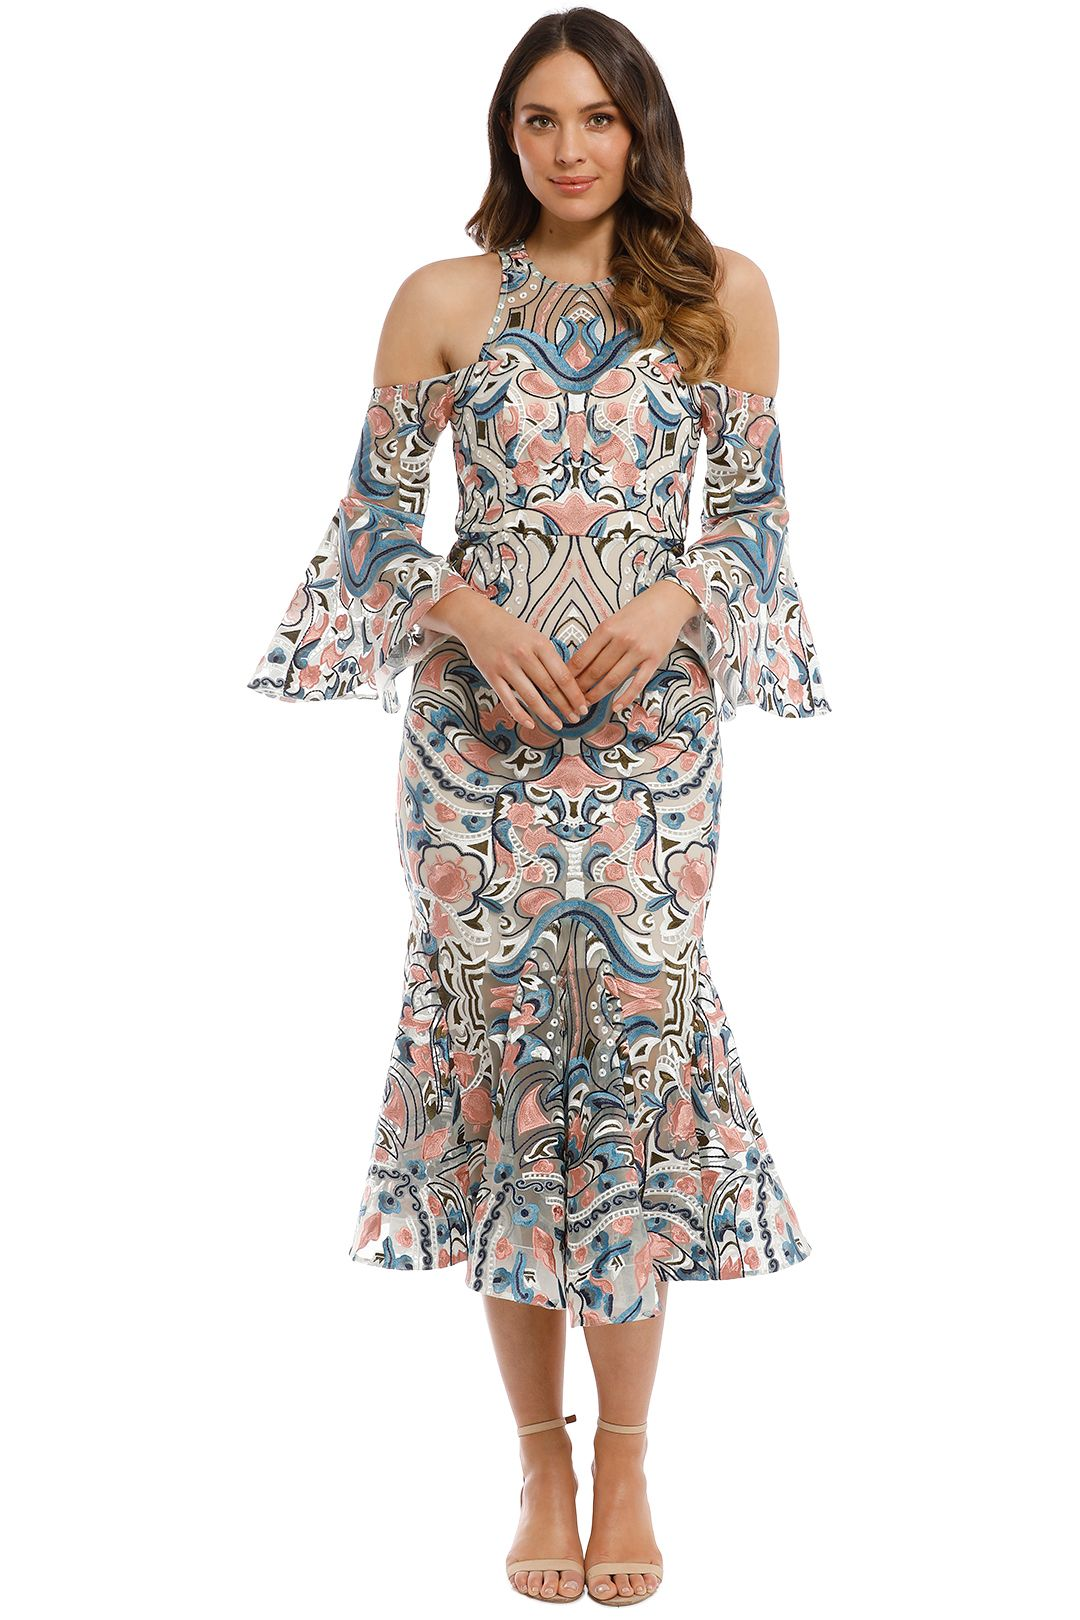 Thurley - Carnival Midi Dress - Peach Multi - Front